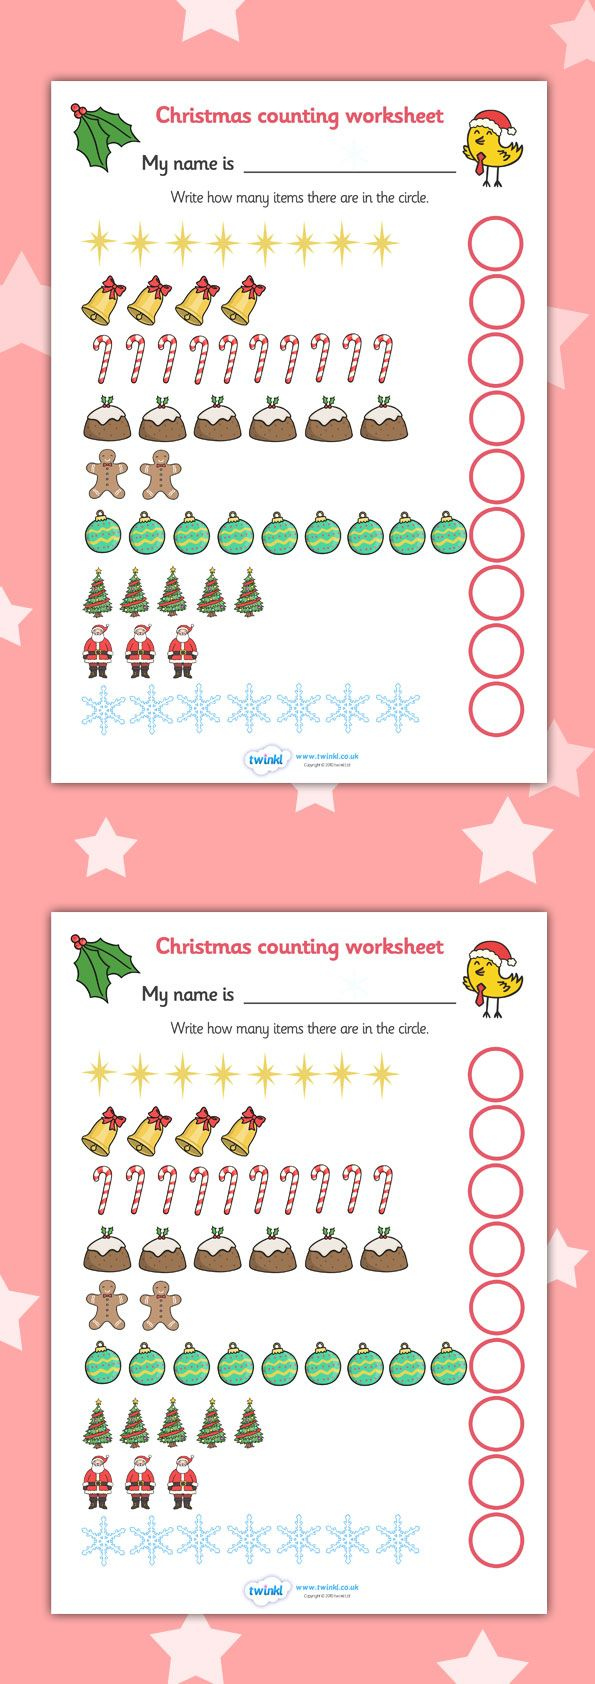 twinkl resources counting at christmas worksheet classroom printables for pre school. Black Bedroom Furniture Sets. Home Design Ideas